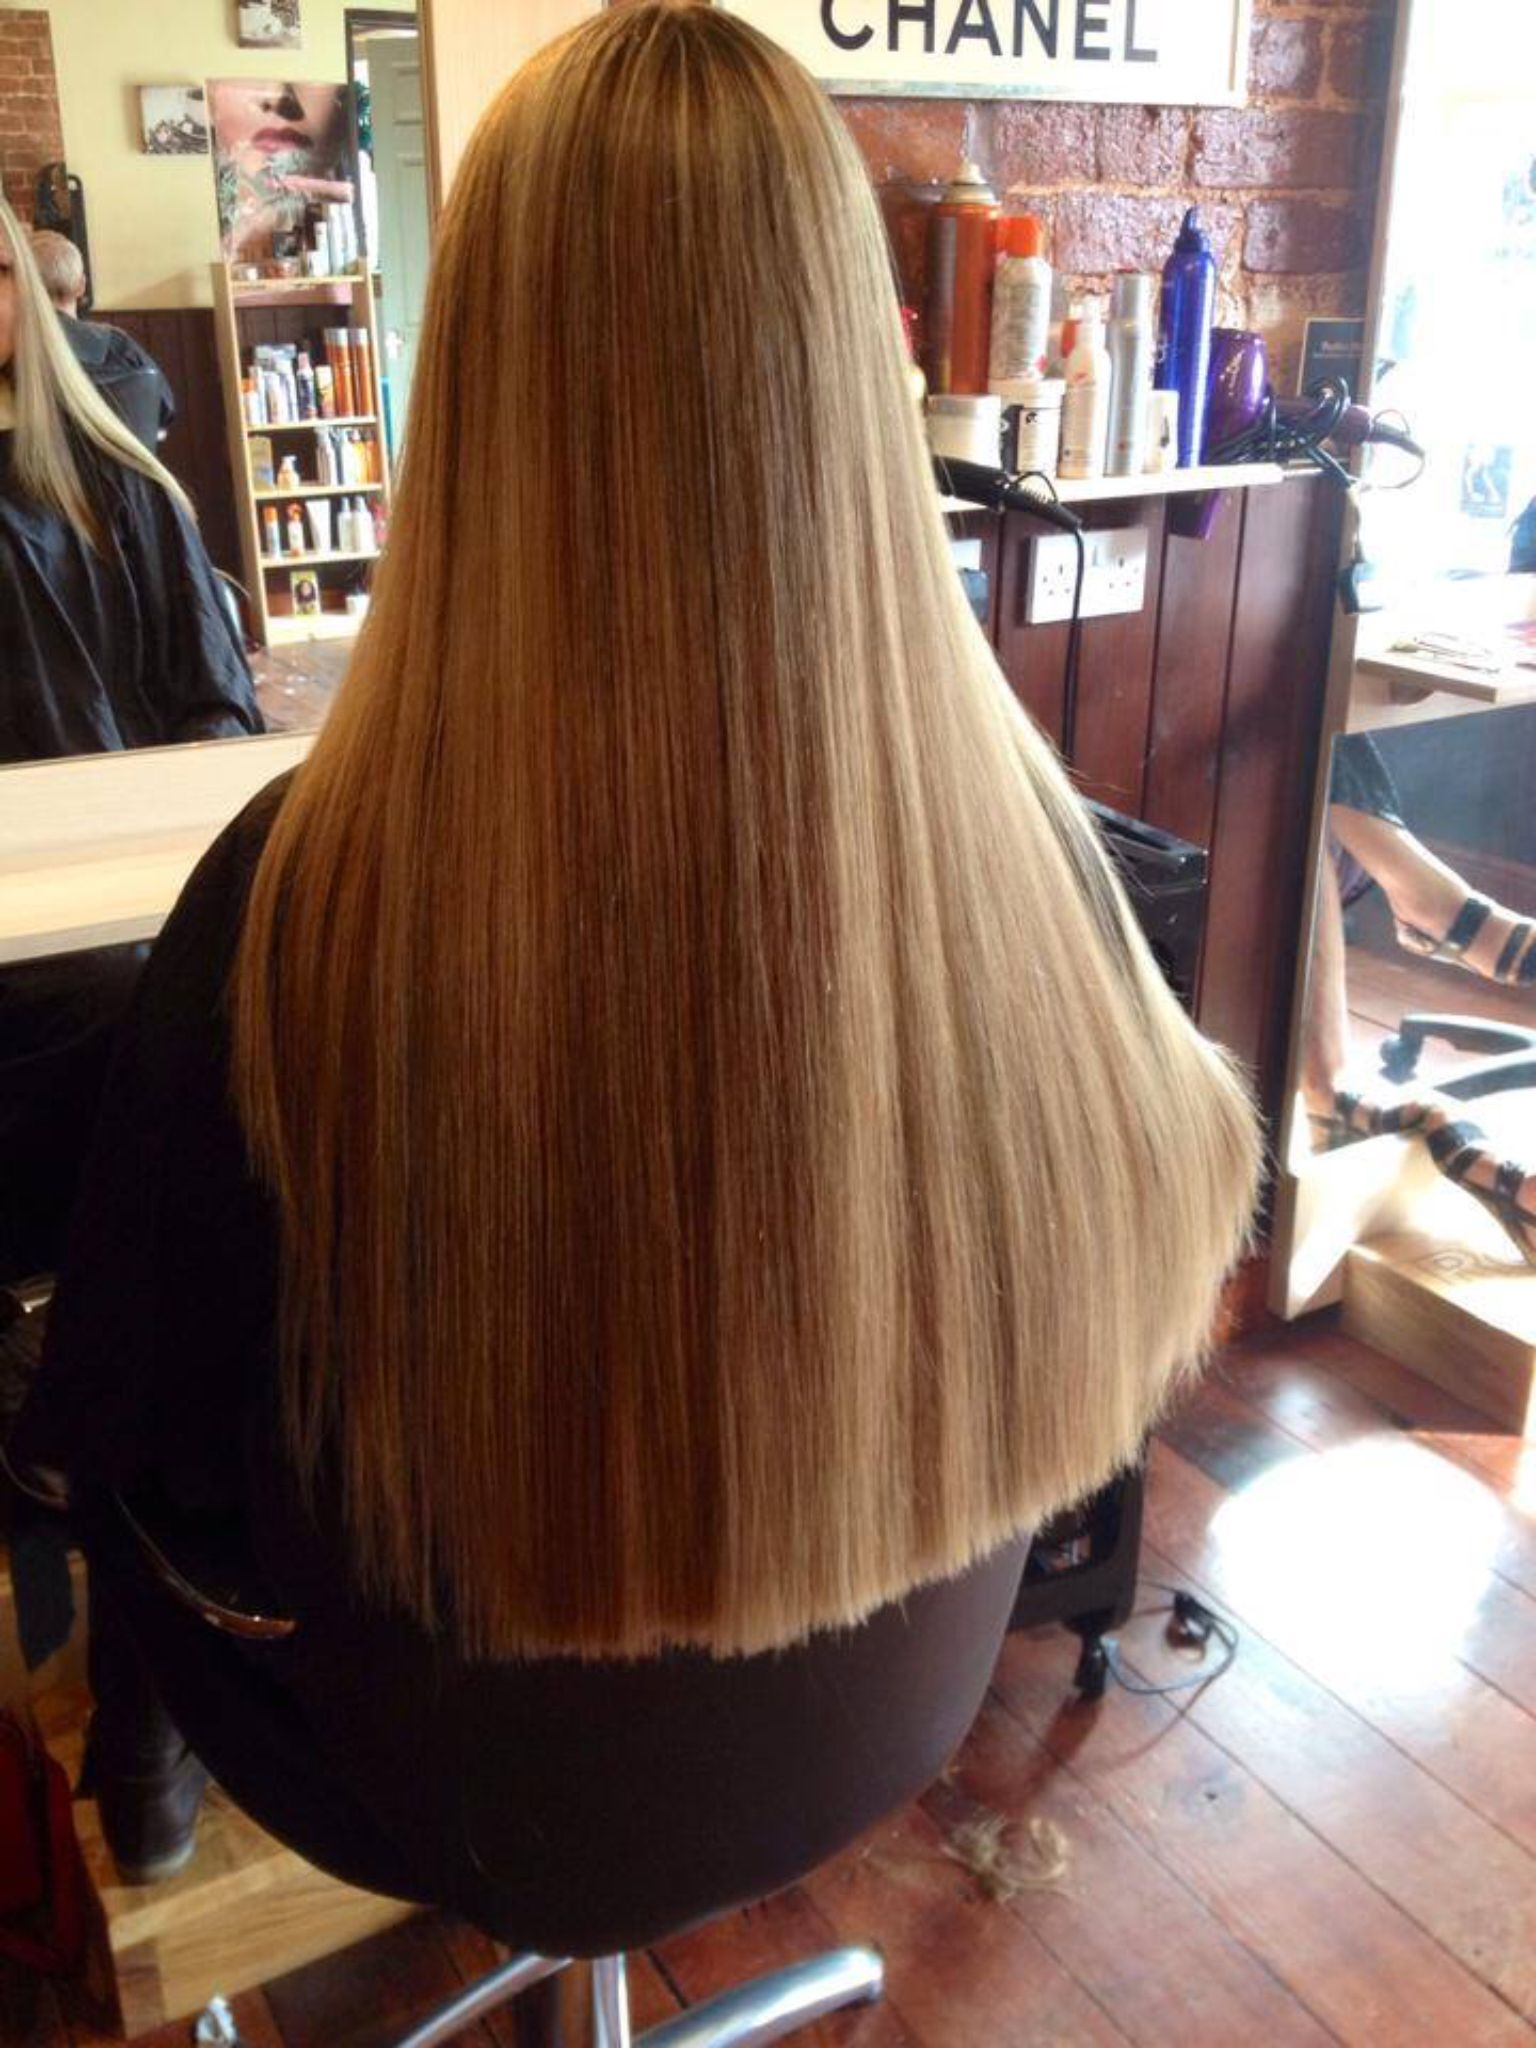 Blonde And Caramel Long Hair Getting Ready In The